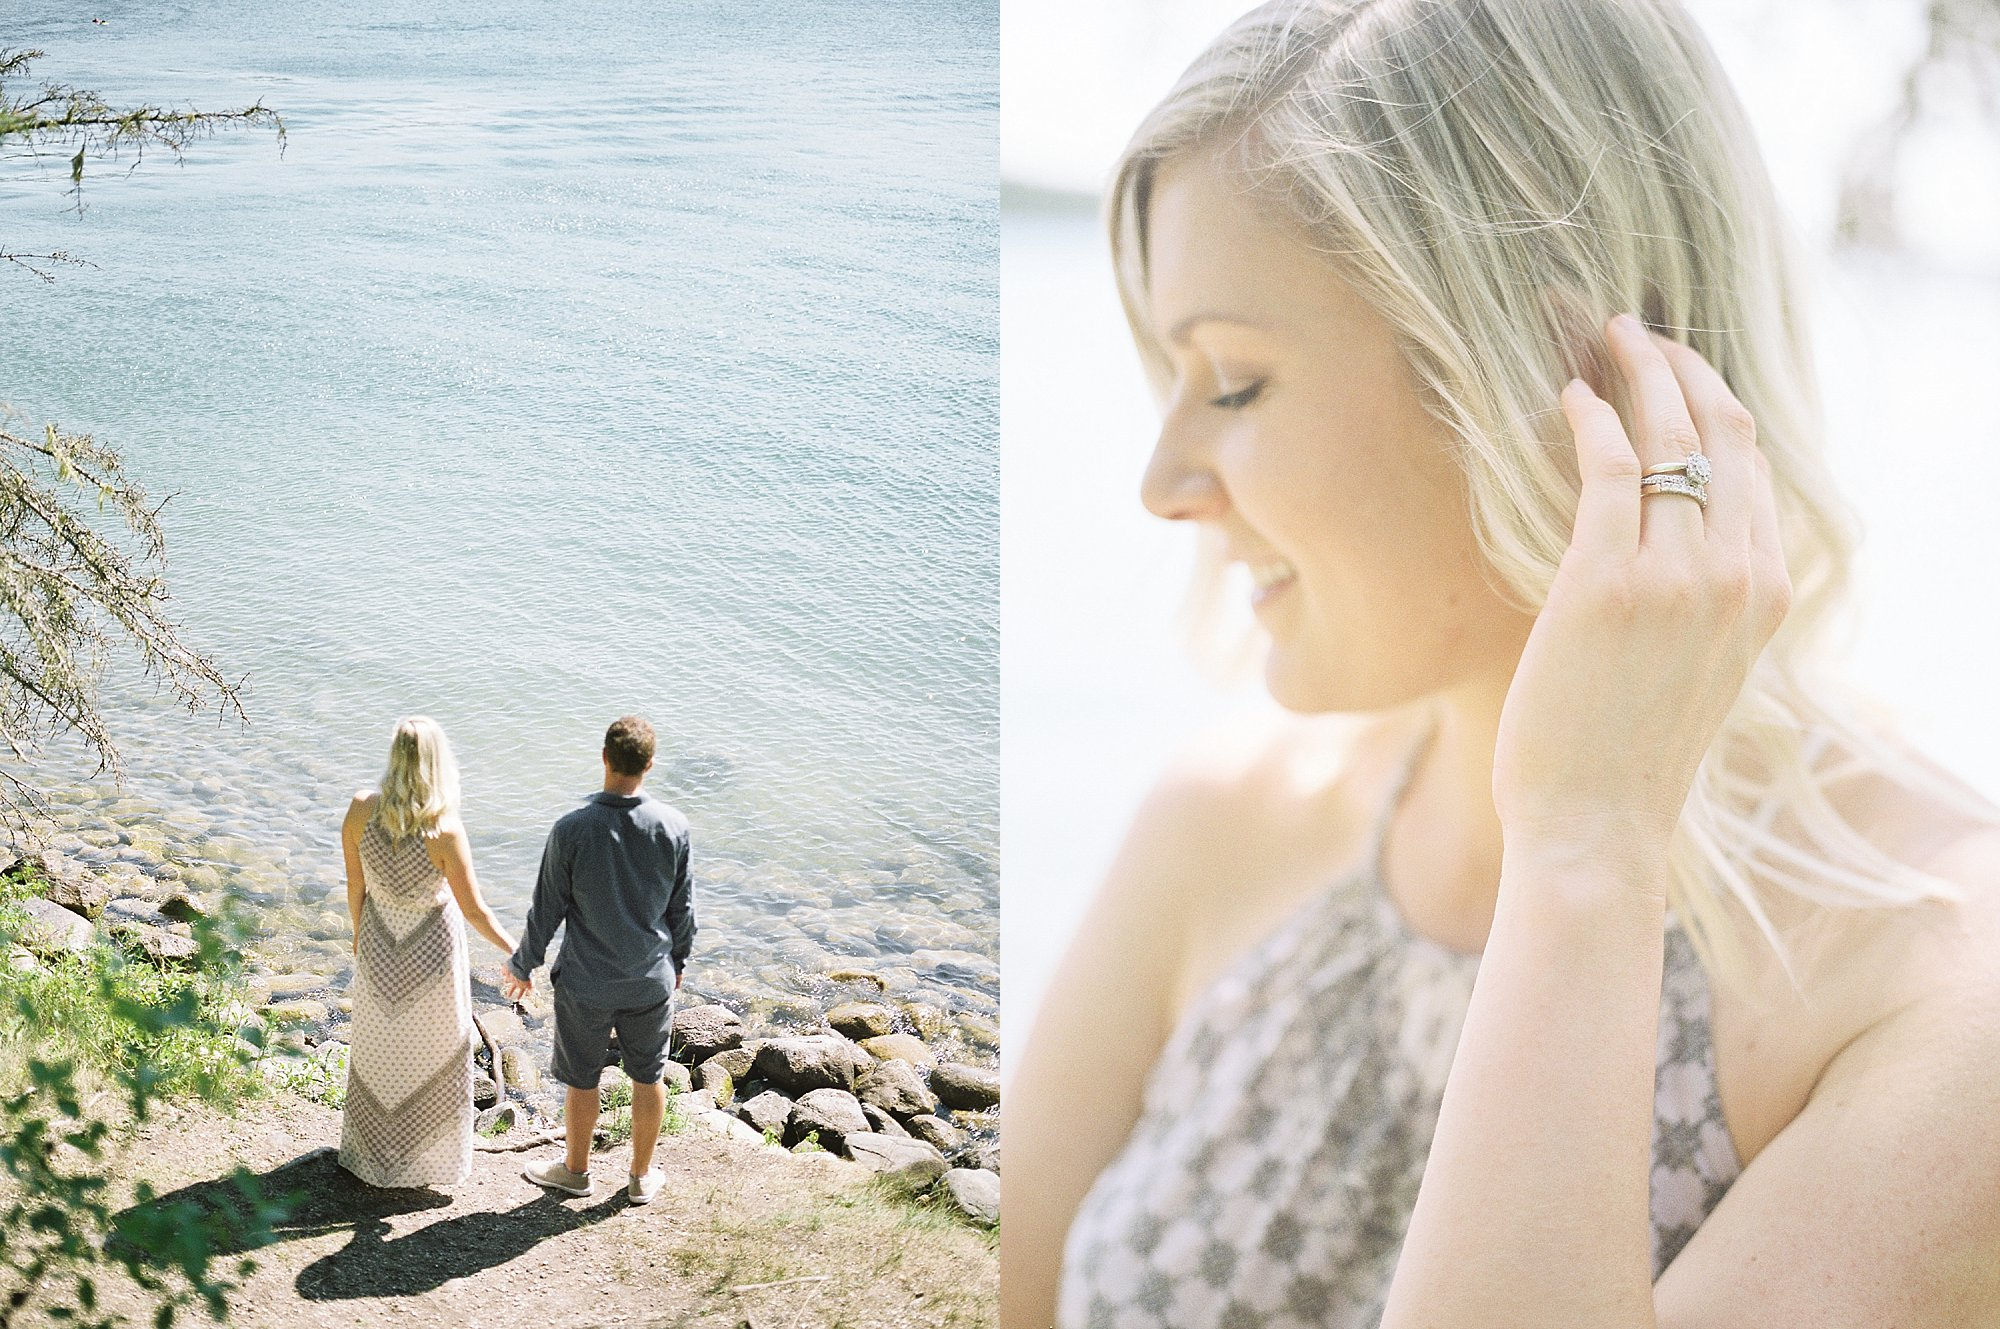 Fine Art Film Photographer | Canadian Wedding Photographer | Anniversary photoshoot | Vancouver Wedding Photographer | Engagement Session by a lake | Keila Marie Photography